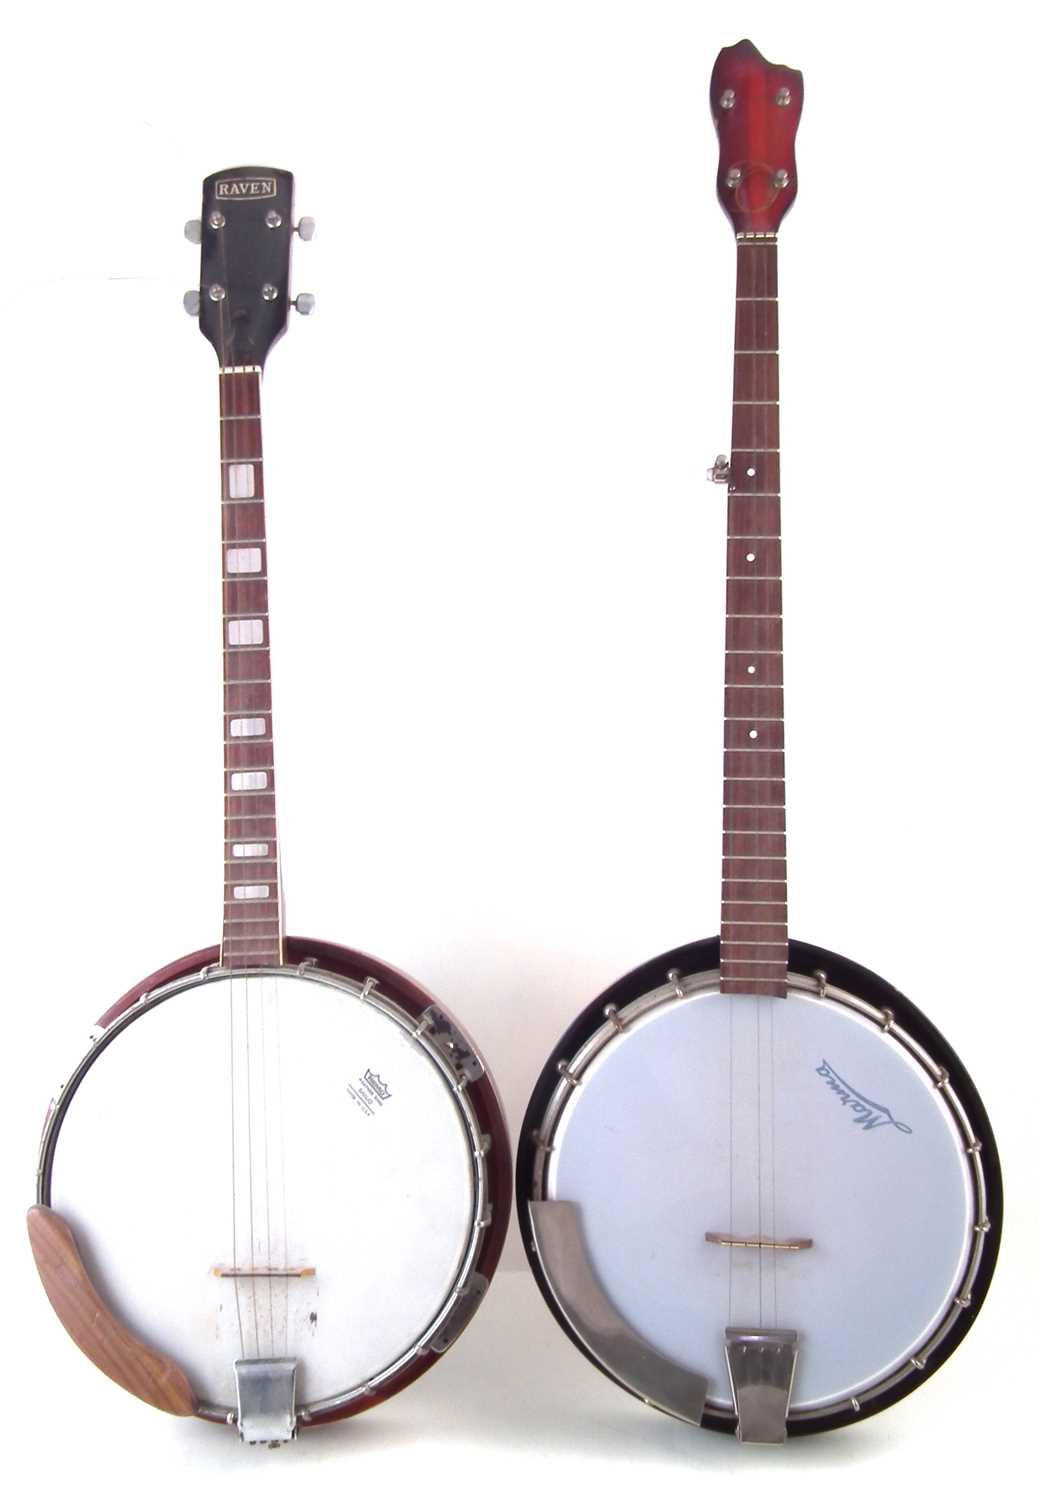 Lot 16-Raven four string banjo and a five string banjo